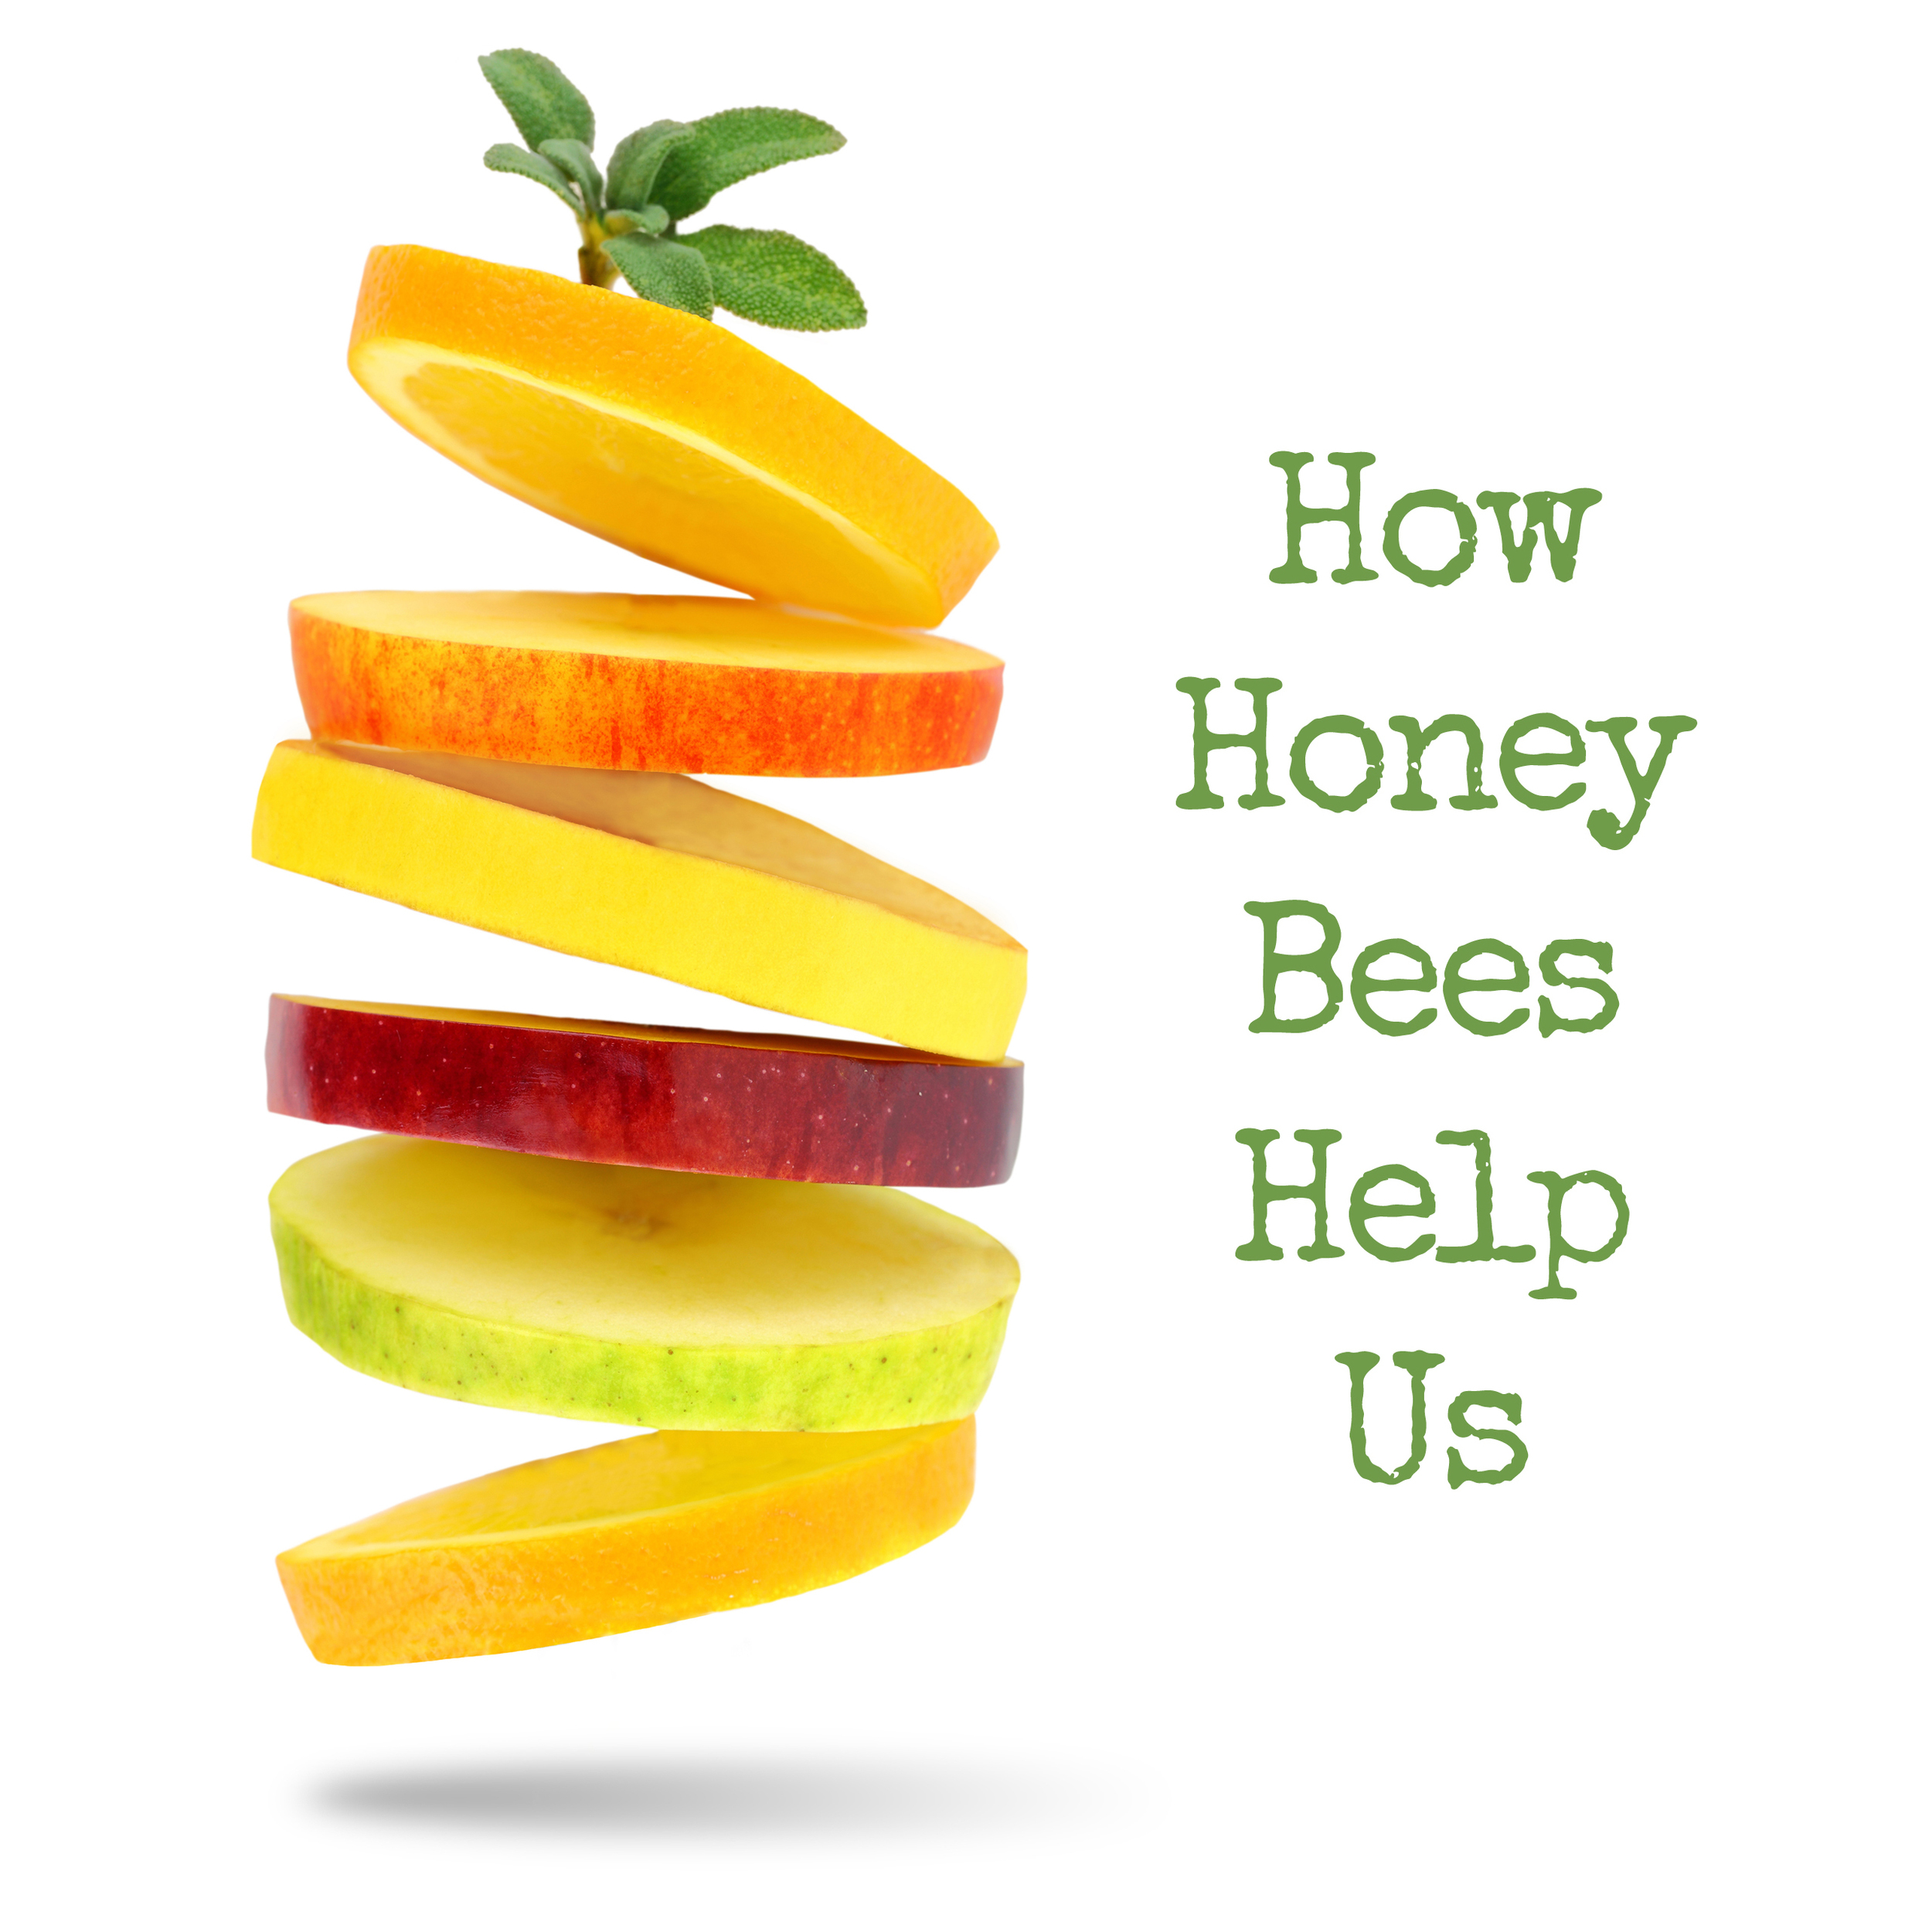 If you enjoy eating fresh fruits and vegetables, you likely have a bee to thank for that. Honey bees help pollinate about 80% of the produce we buy at the store and grow in our gardens. Billions of bees are needed around the world to make healthy food available for us to eat.